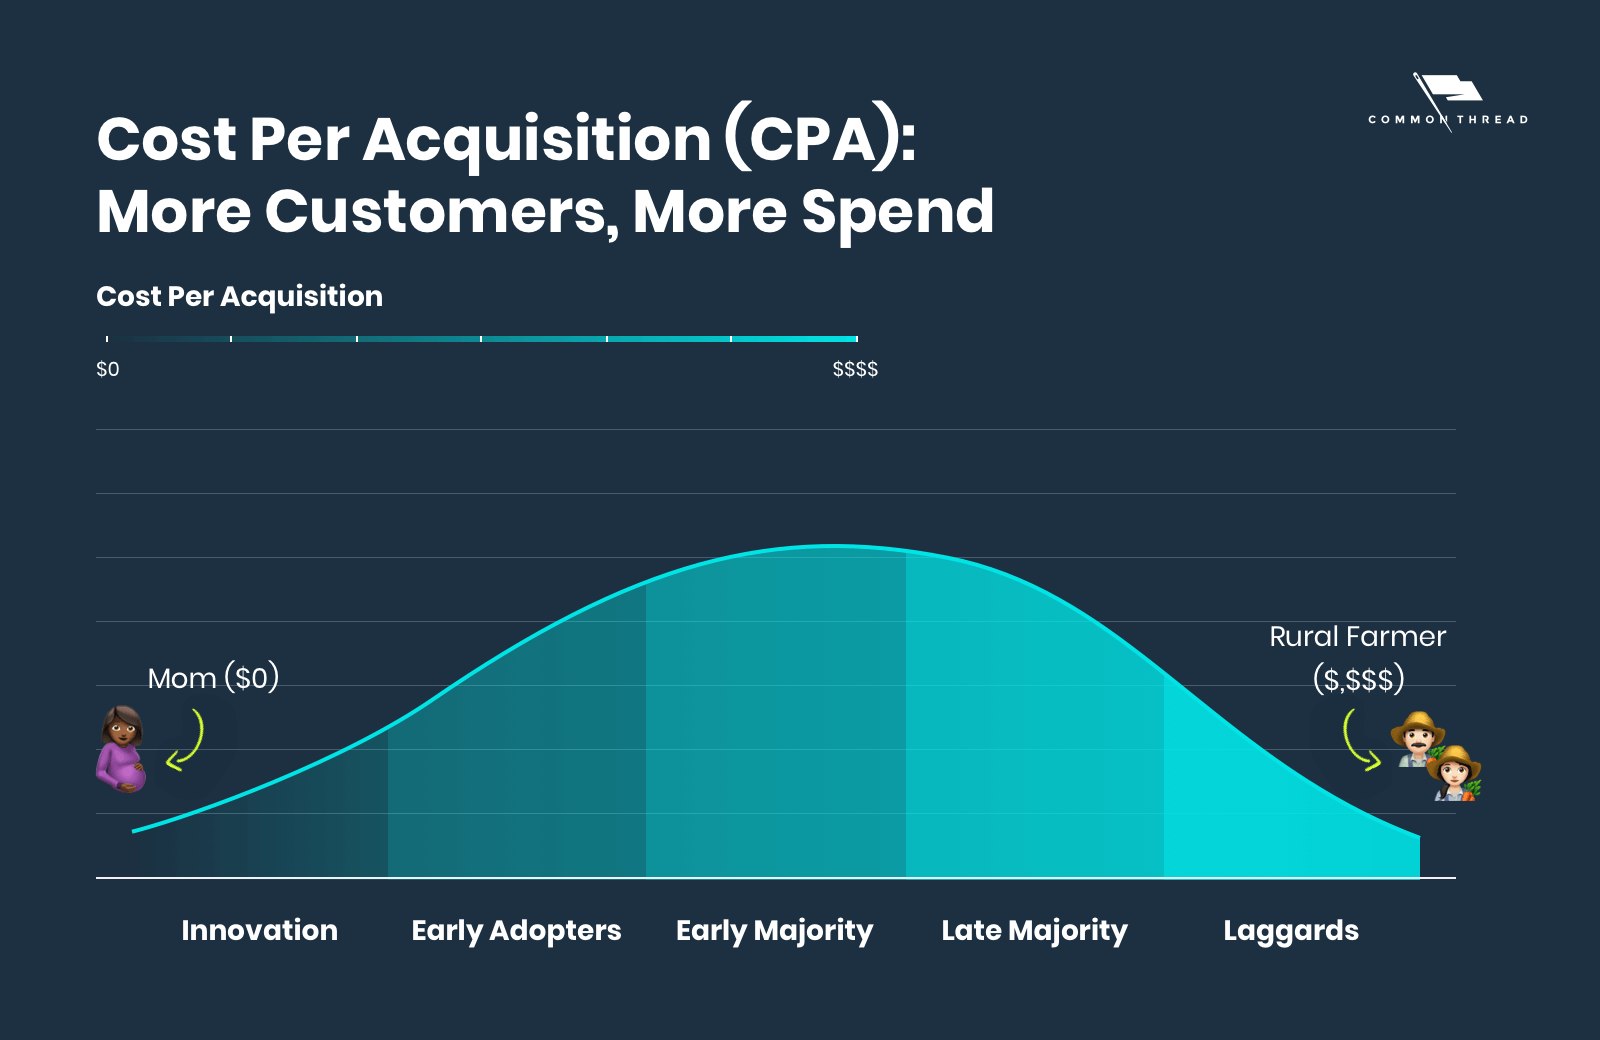 CPA Digital Marketing: Customer Acquisition Cost Ecommerce Business - More Customers, More Spend